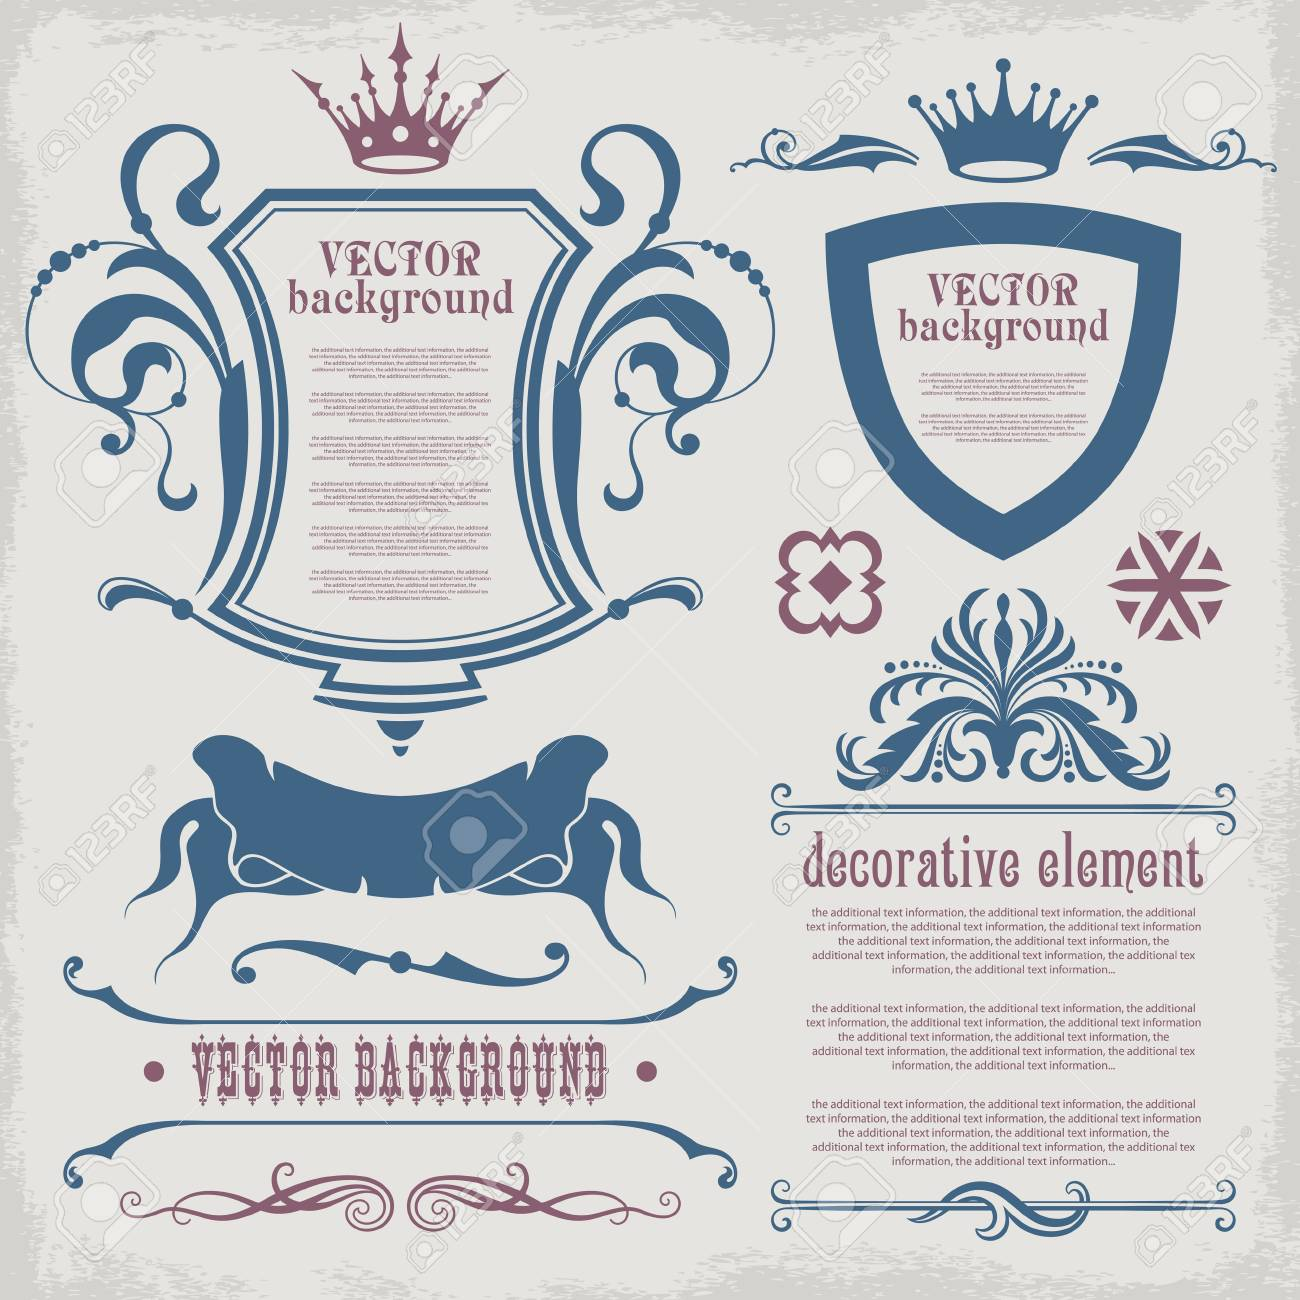 Set of decorative elements for the design of the text. Stock Vector - 13735181